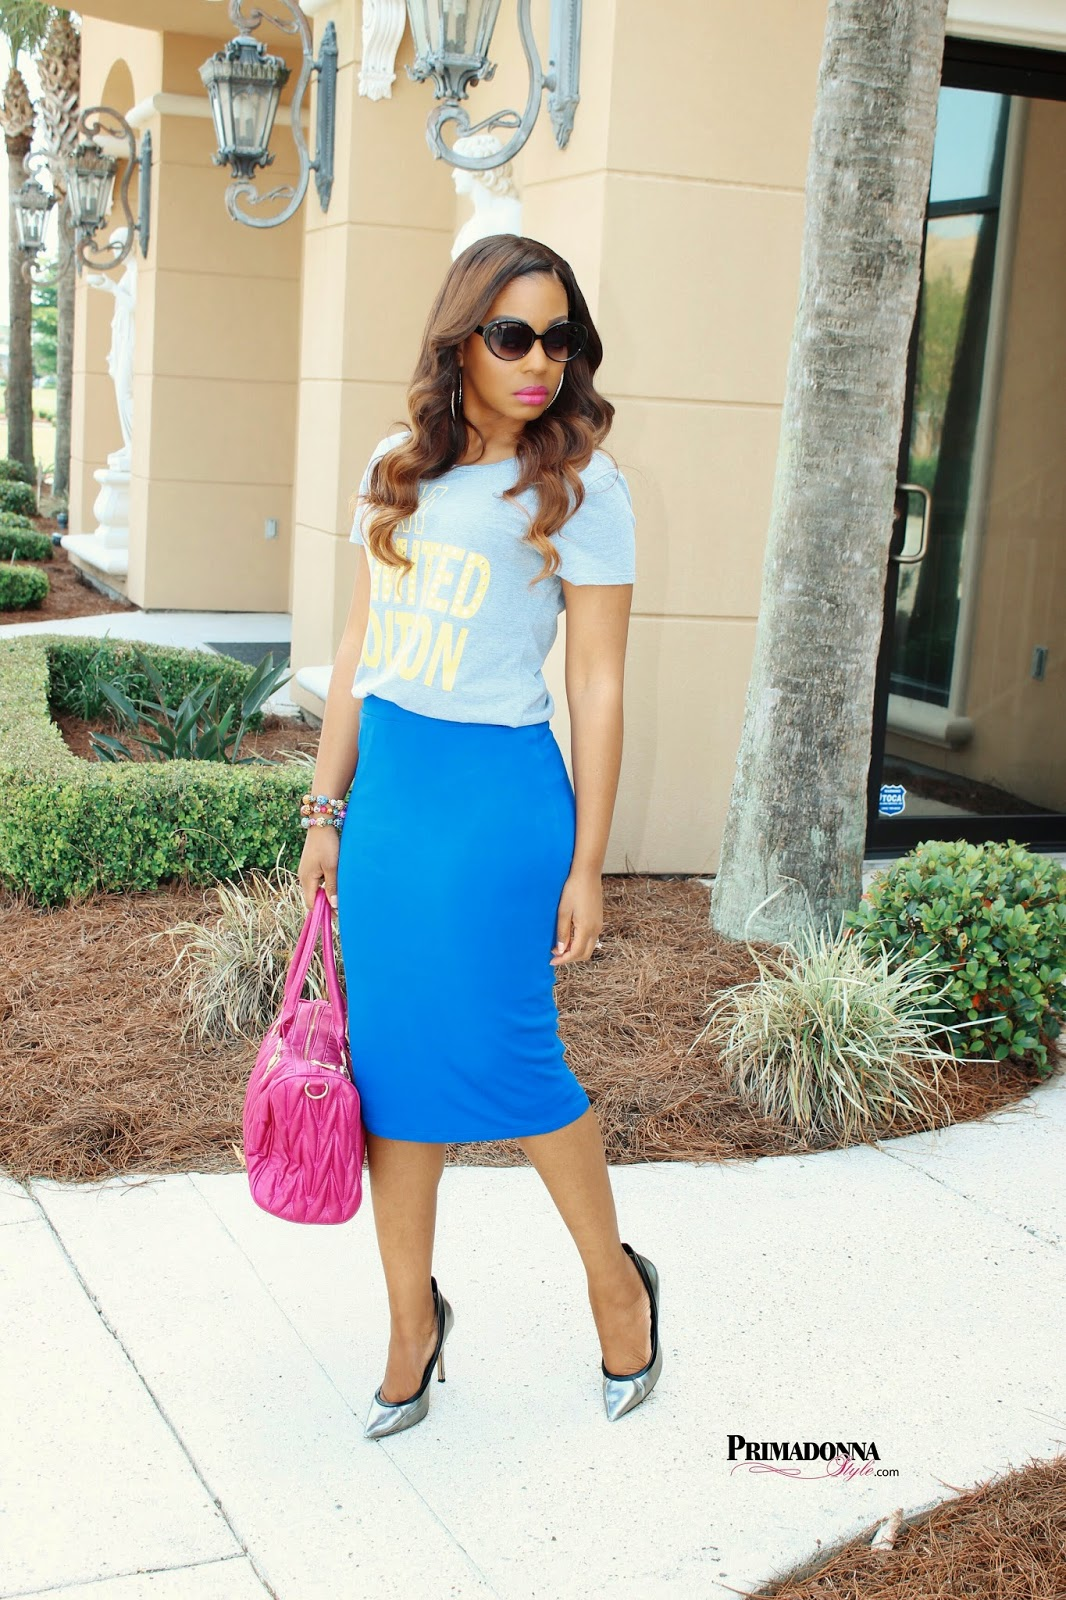 City Streets® Crop Graphic Tee  Apt 9 Midi Pencil Skirt (another option in black)  Rock & Republic  Pewter Heels  Bracelet: Baubles & Bling by Cynthia  Handbag: TJ-Maxx